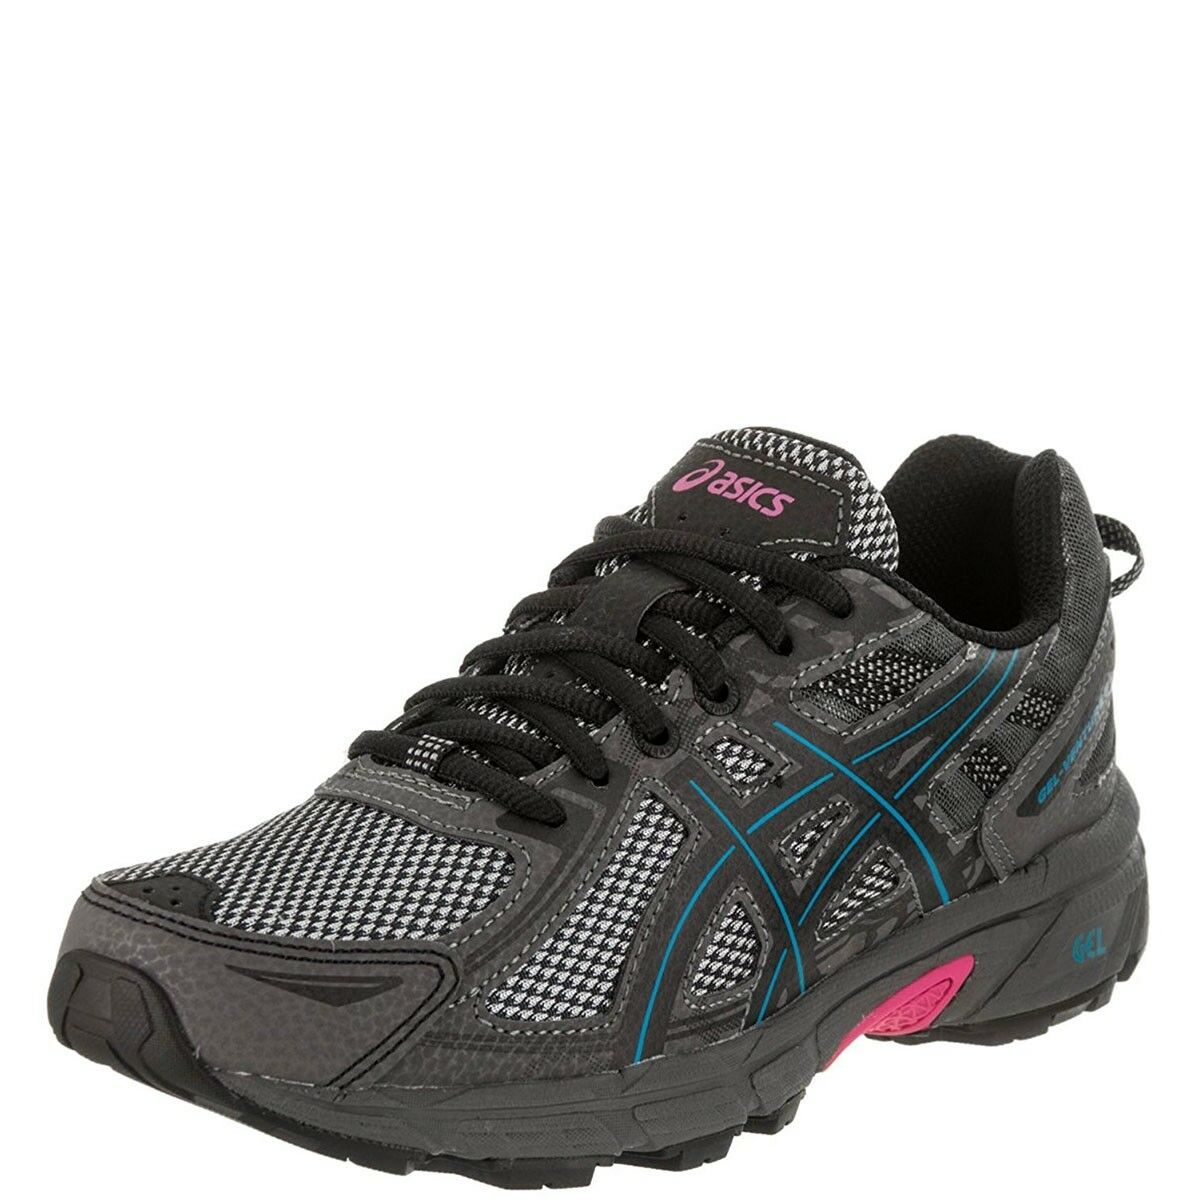 Asics Women's Gel-Venture 6 Running Shoes Black/Island Blue/Pink